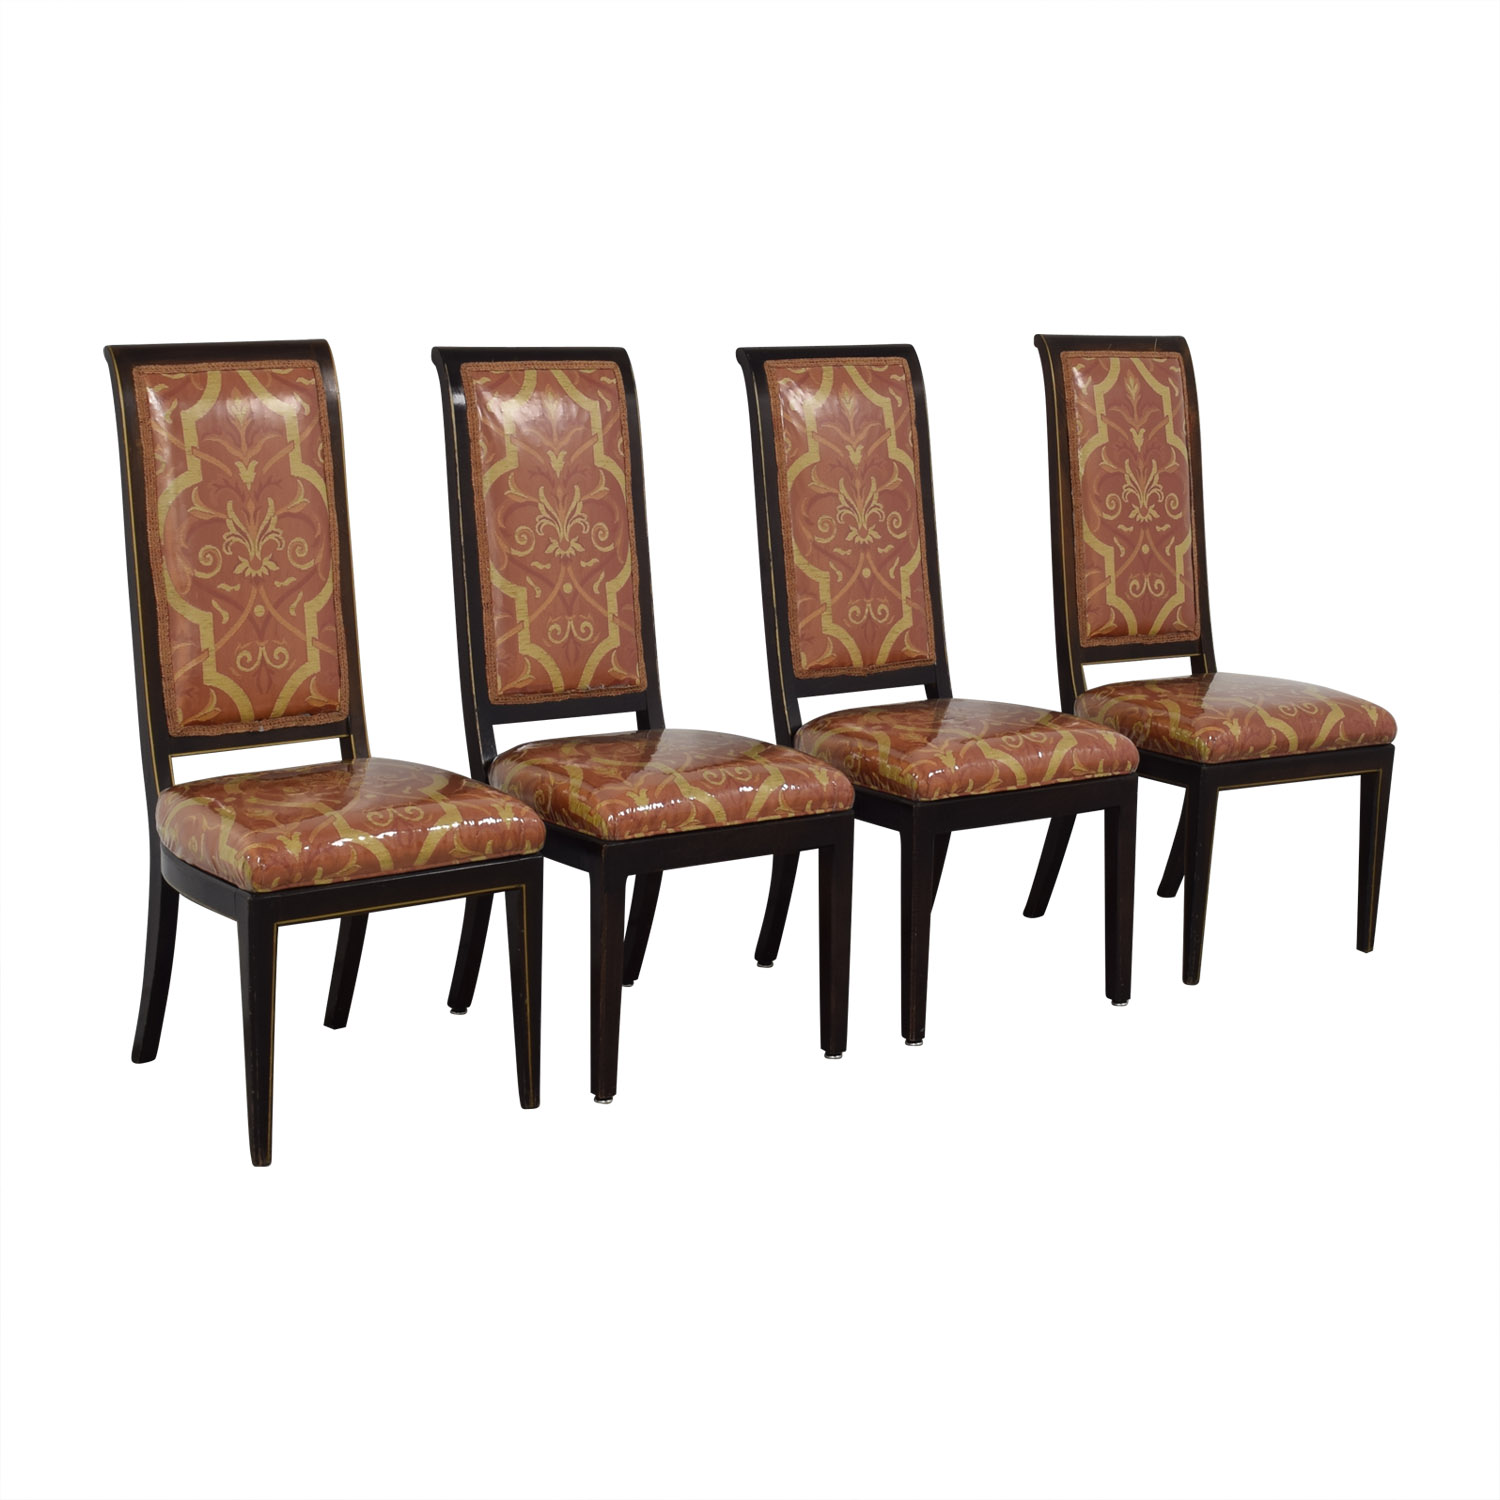 Fabric Dining Chairs / Dining Chairs